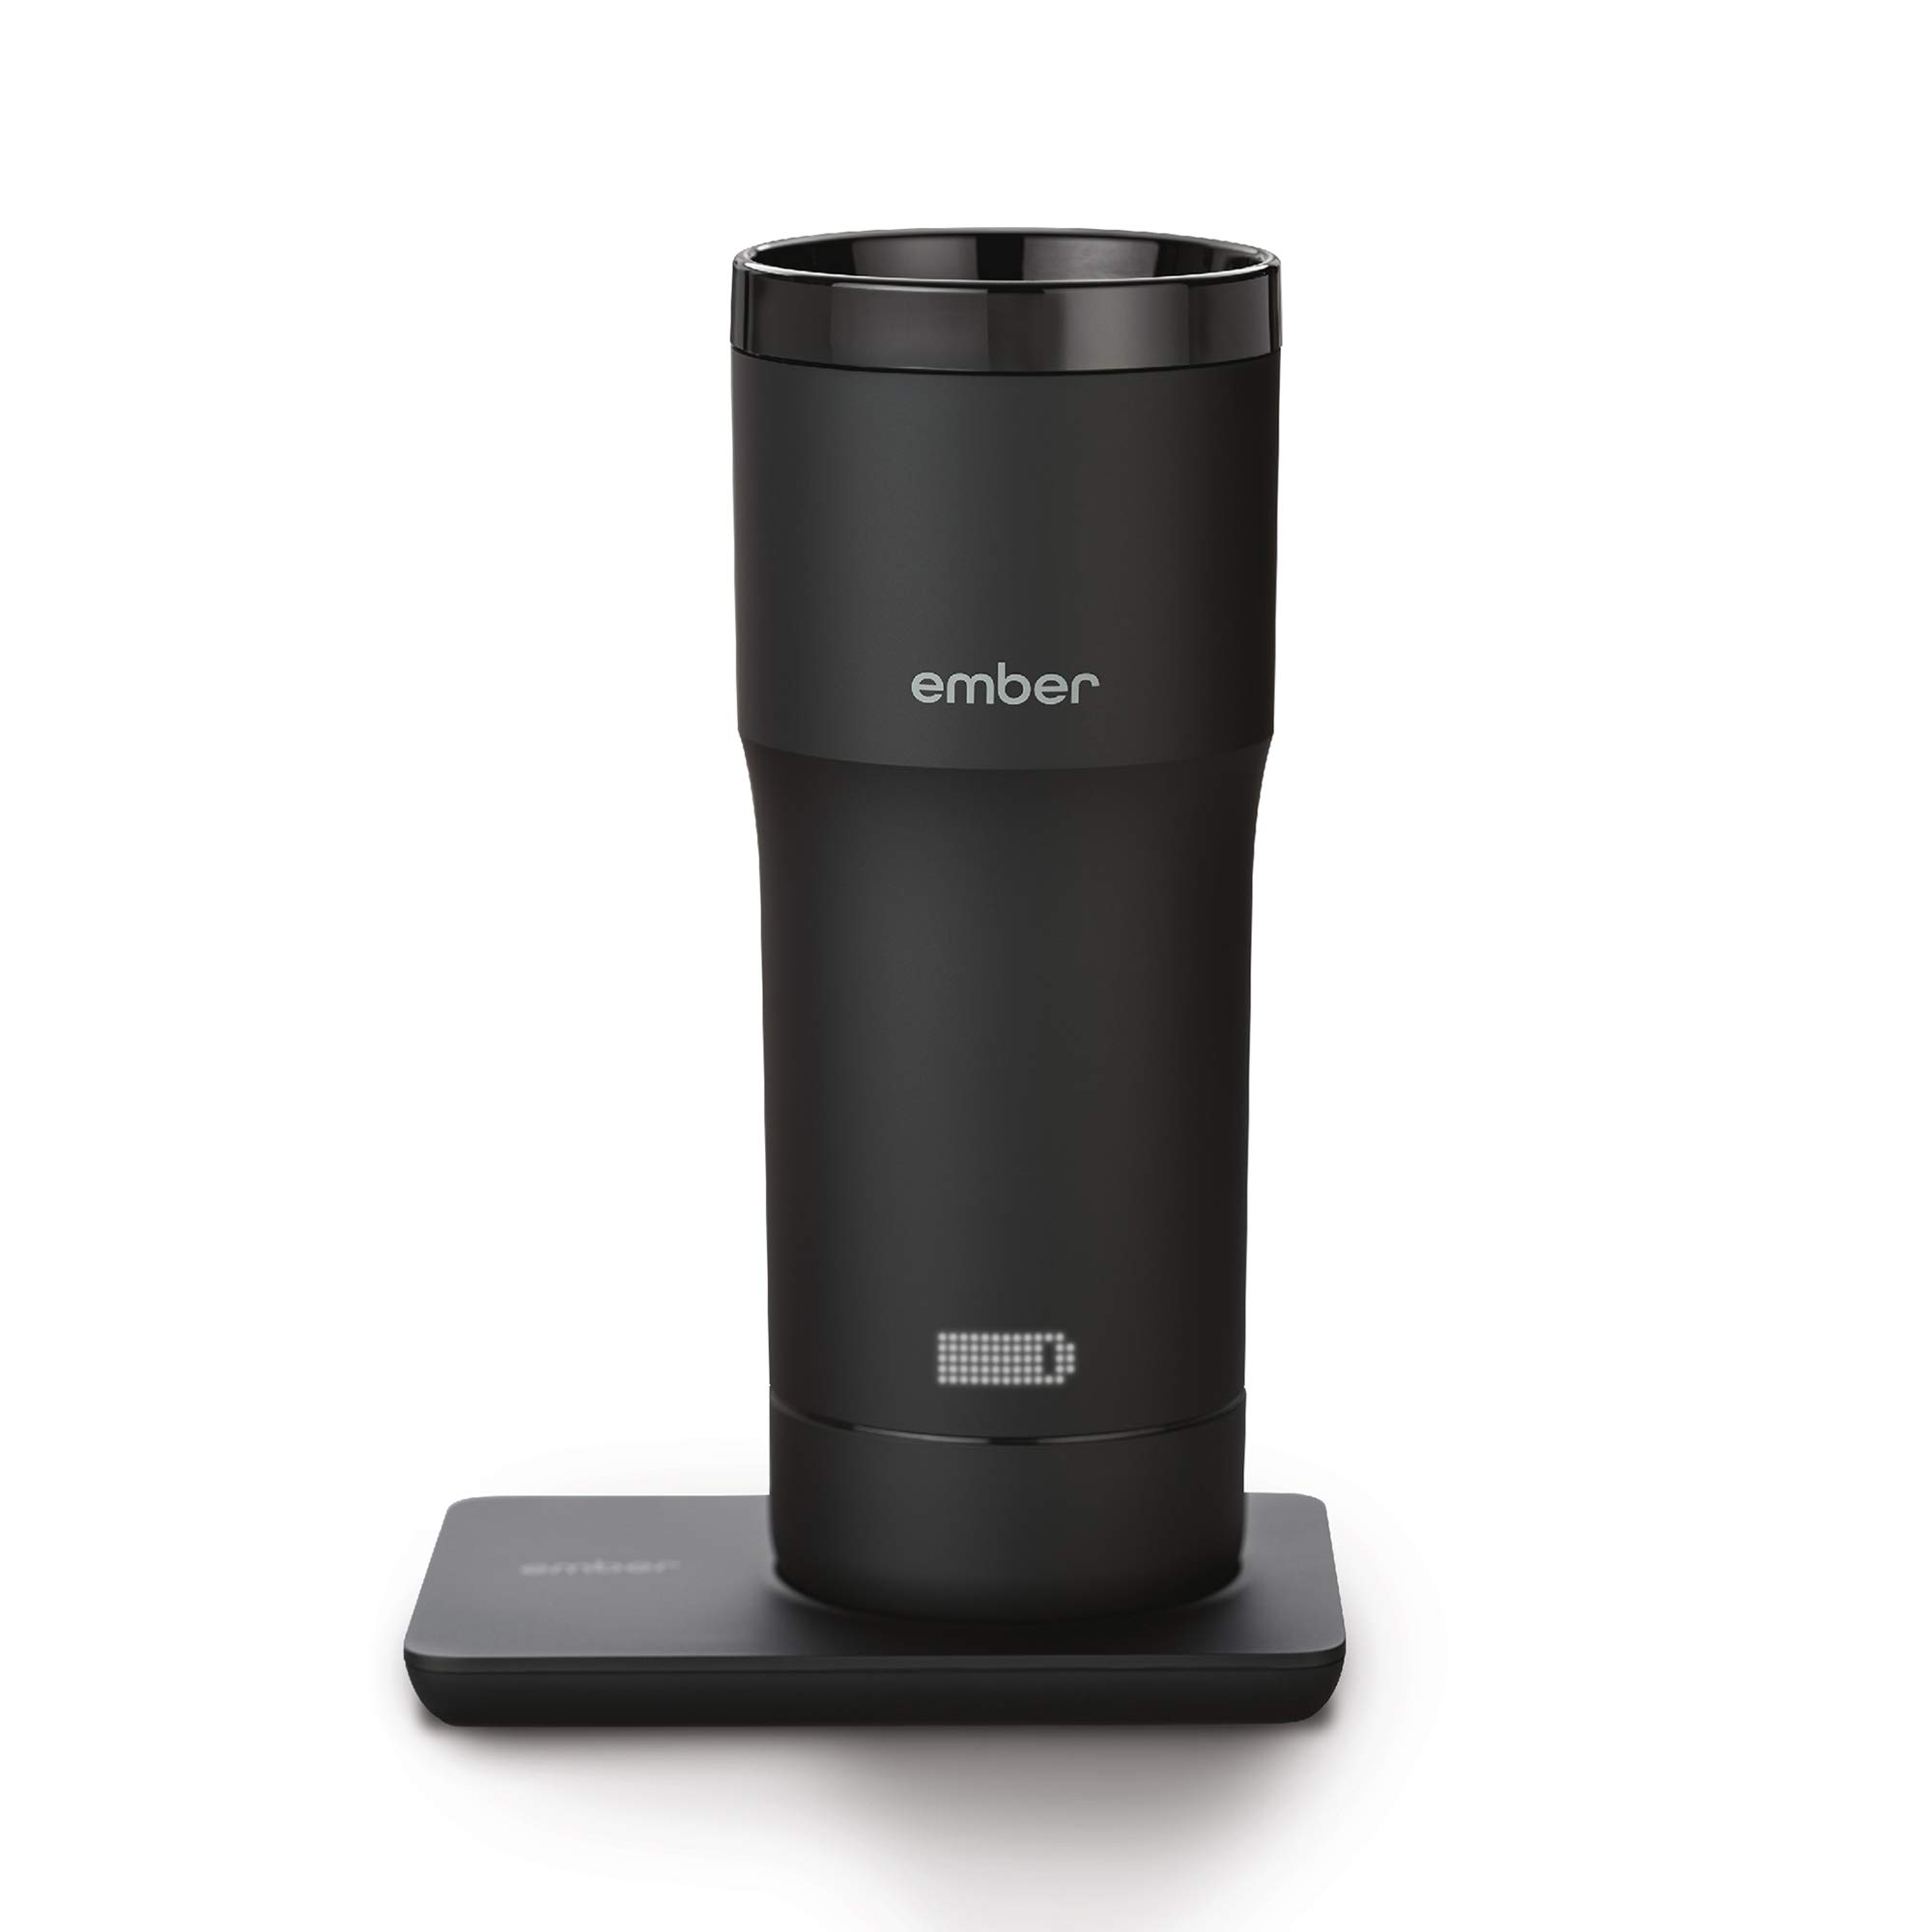 Ember Temperature Control Travel Mug, 12 Ounce, 2-hr Battery Life, Black - App Controlled Heated Coffee Travel Mug by Ember